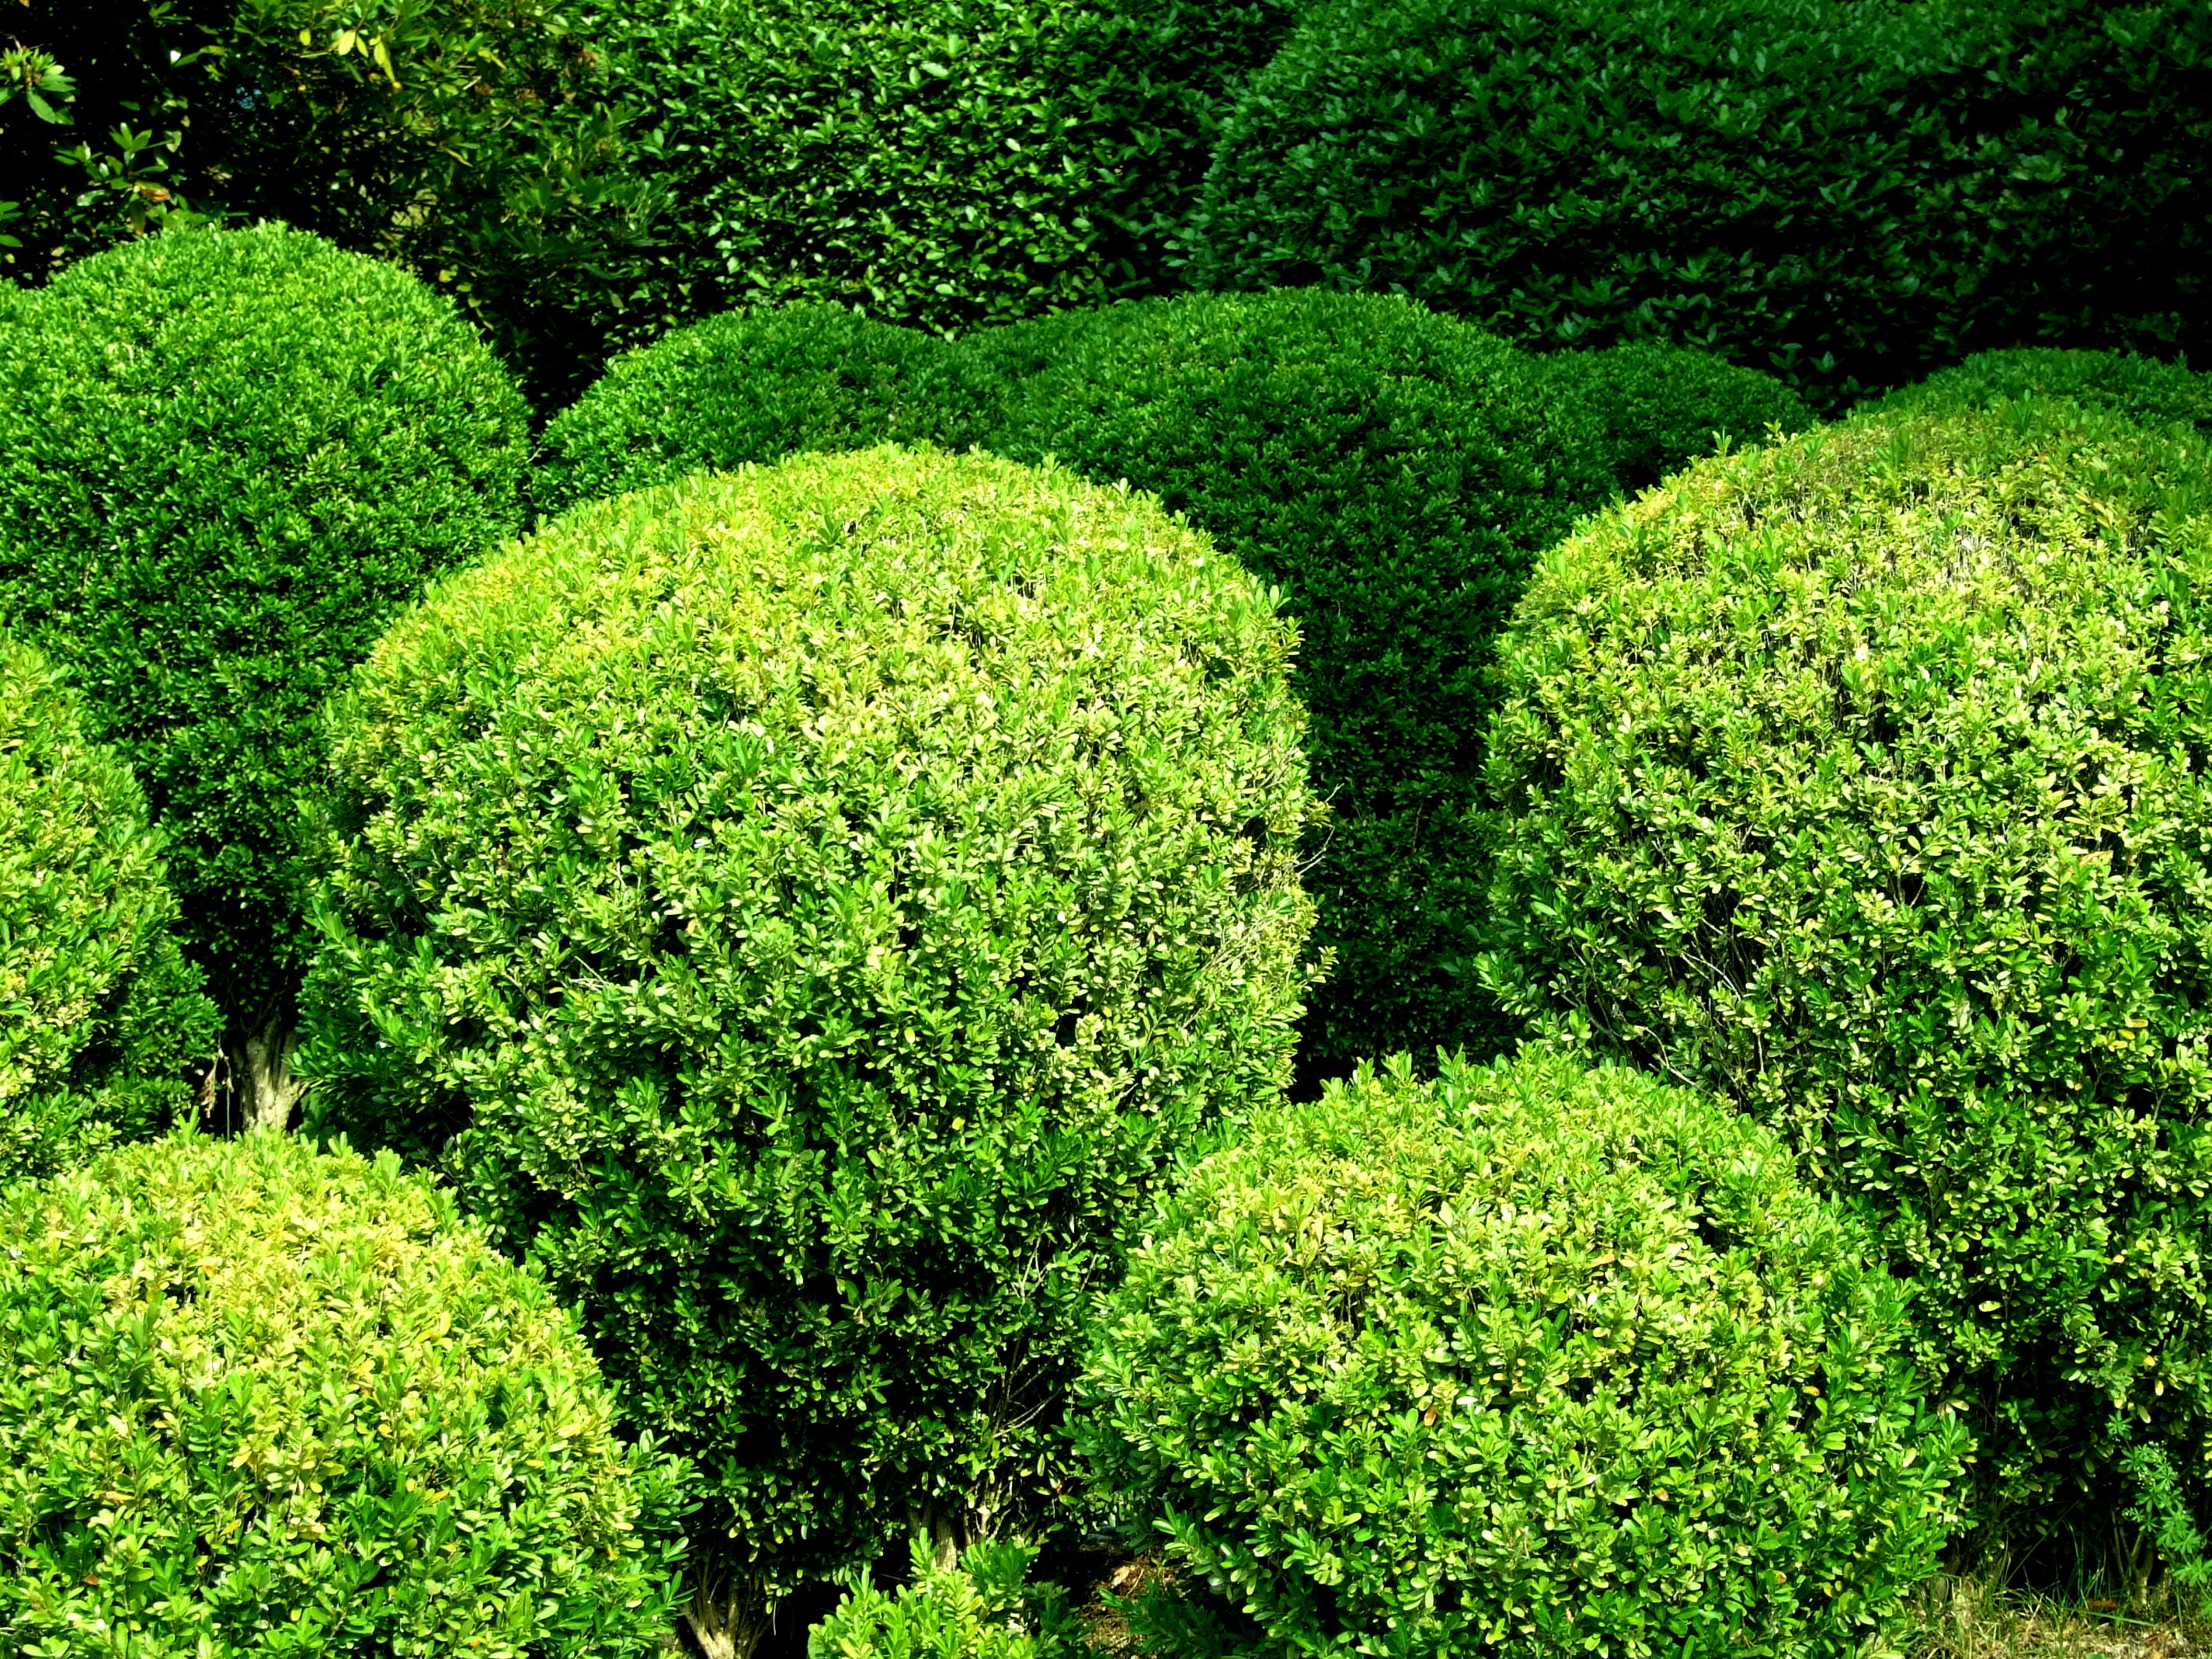 Free stock photo of botanical garden, bushes, round bushes